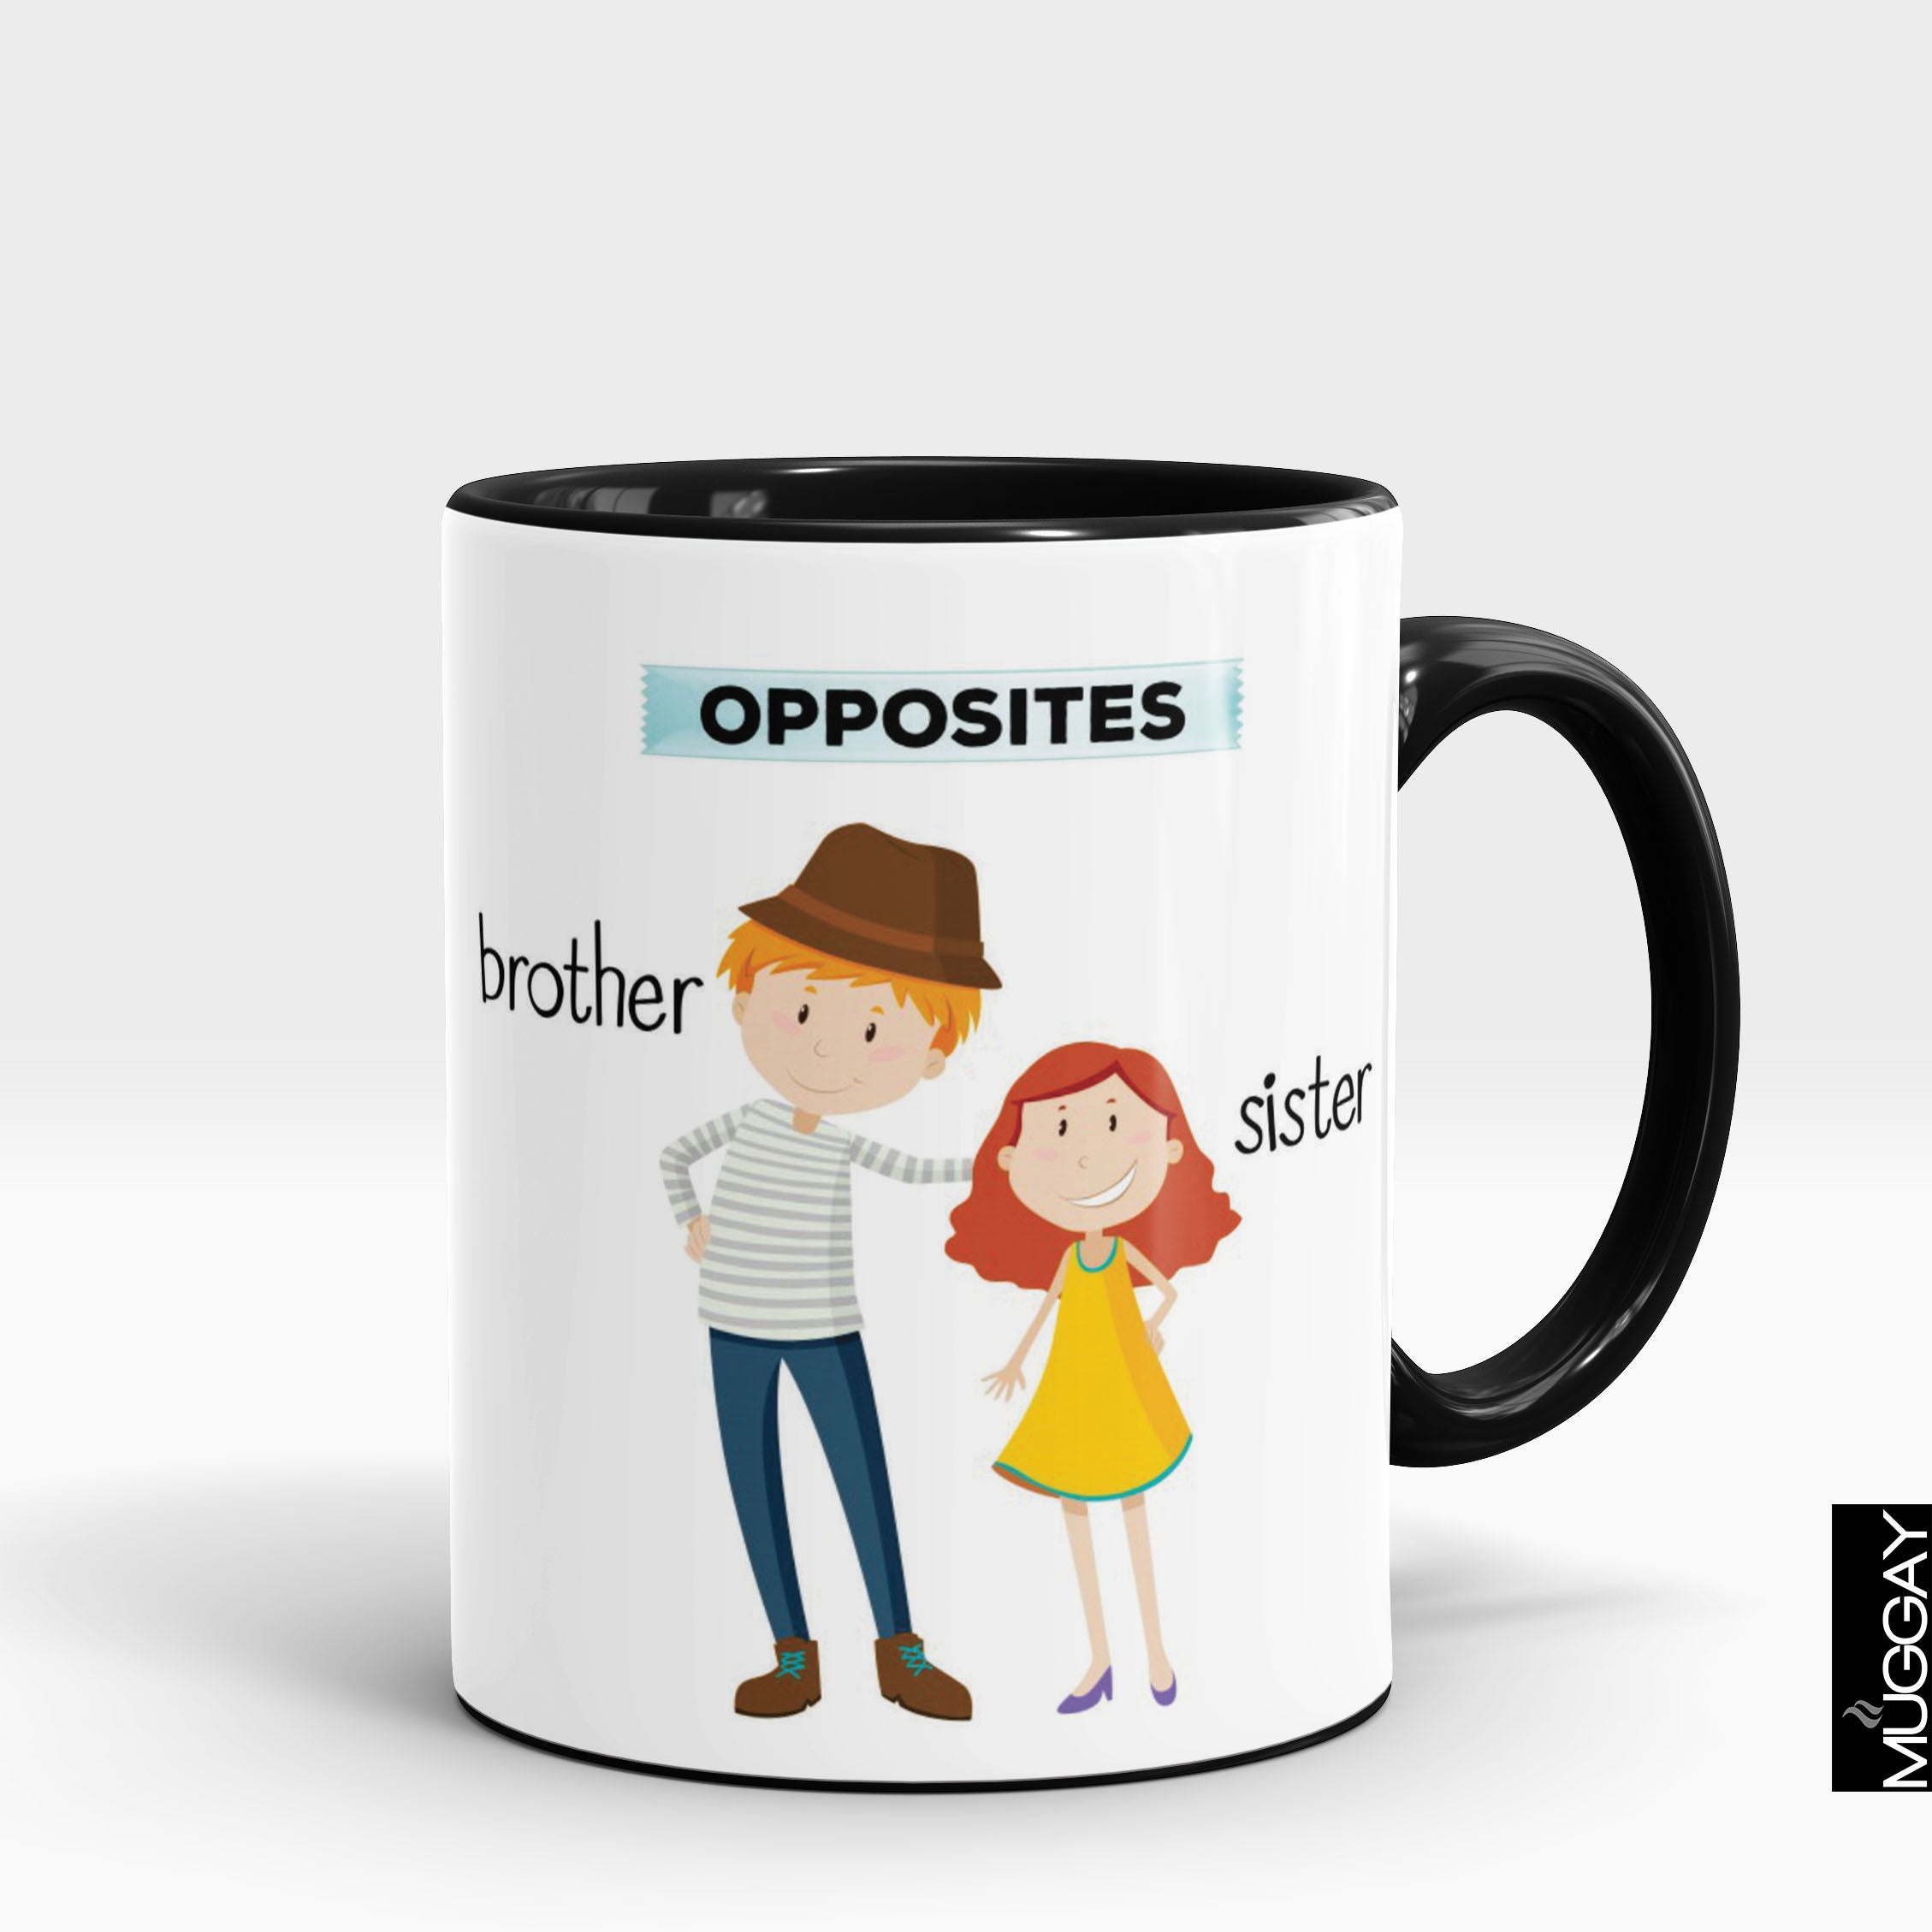 Bro6 - Muggay.com - Mugs - Printing shop - truck Art mugs - Mug printing - Customized printing - Digital printing - Muggay